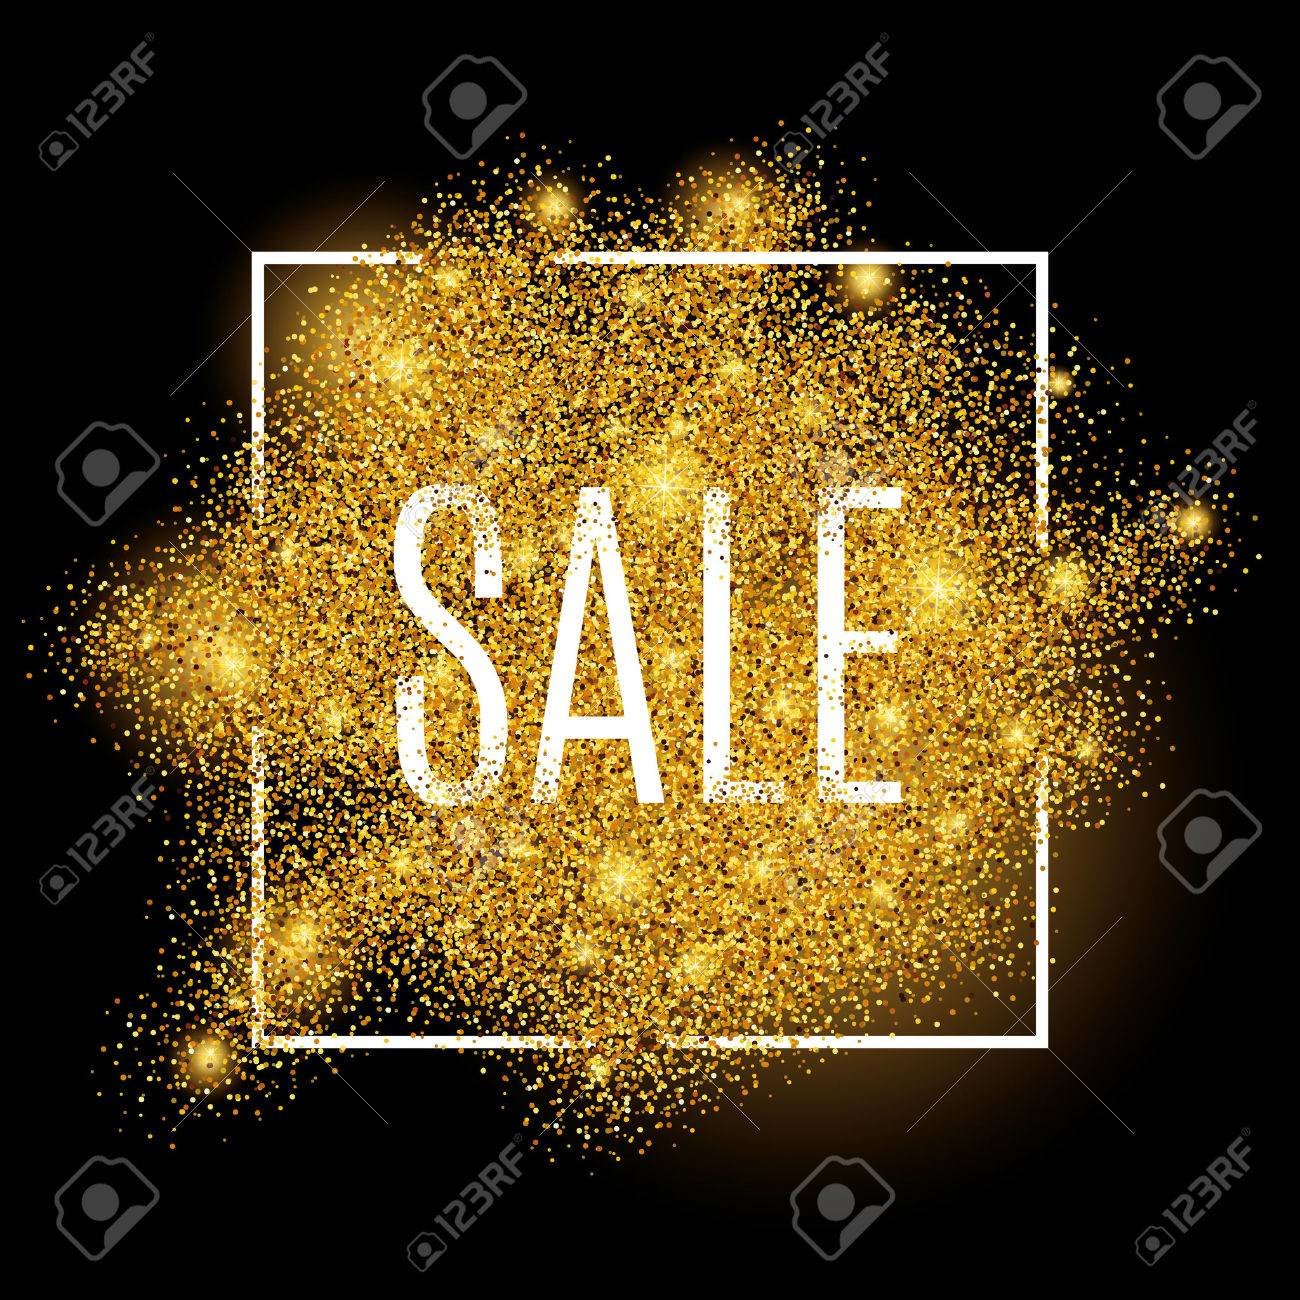 Gold sale background for poster, shopping, for sale sign, discount, marketing, selling, web, header. Abstract golden background for text, type, quote. Gold blur background - 52579349